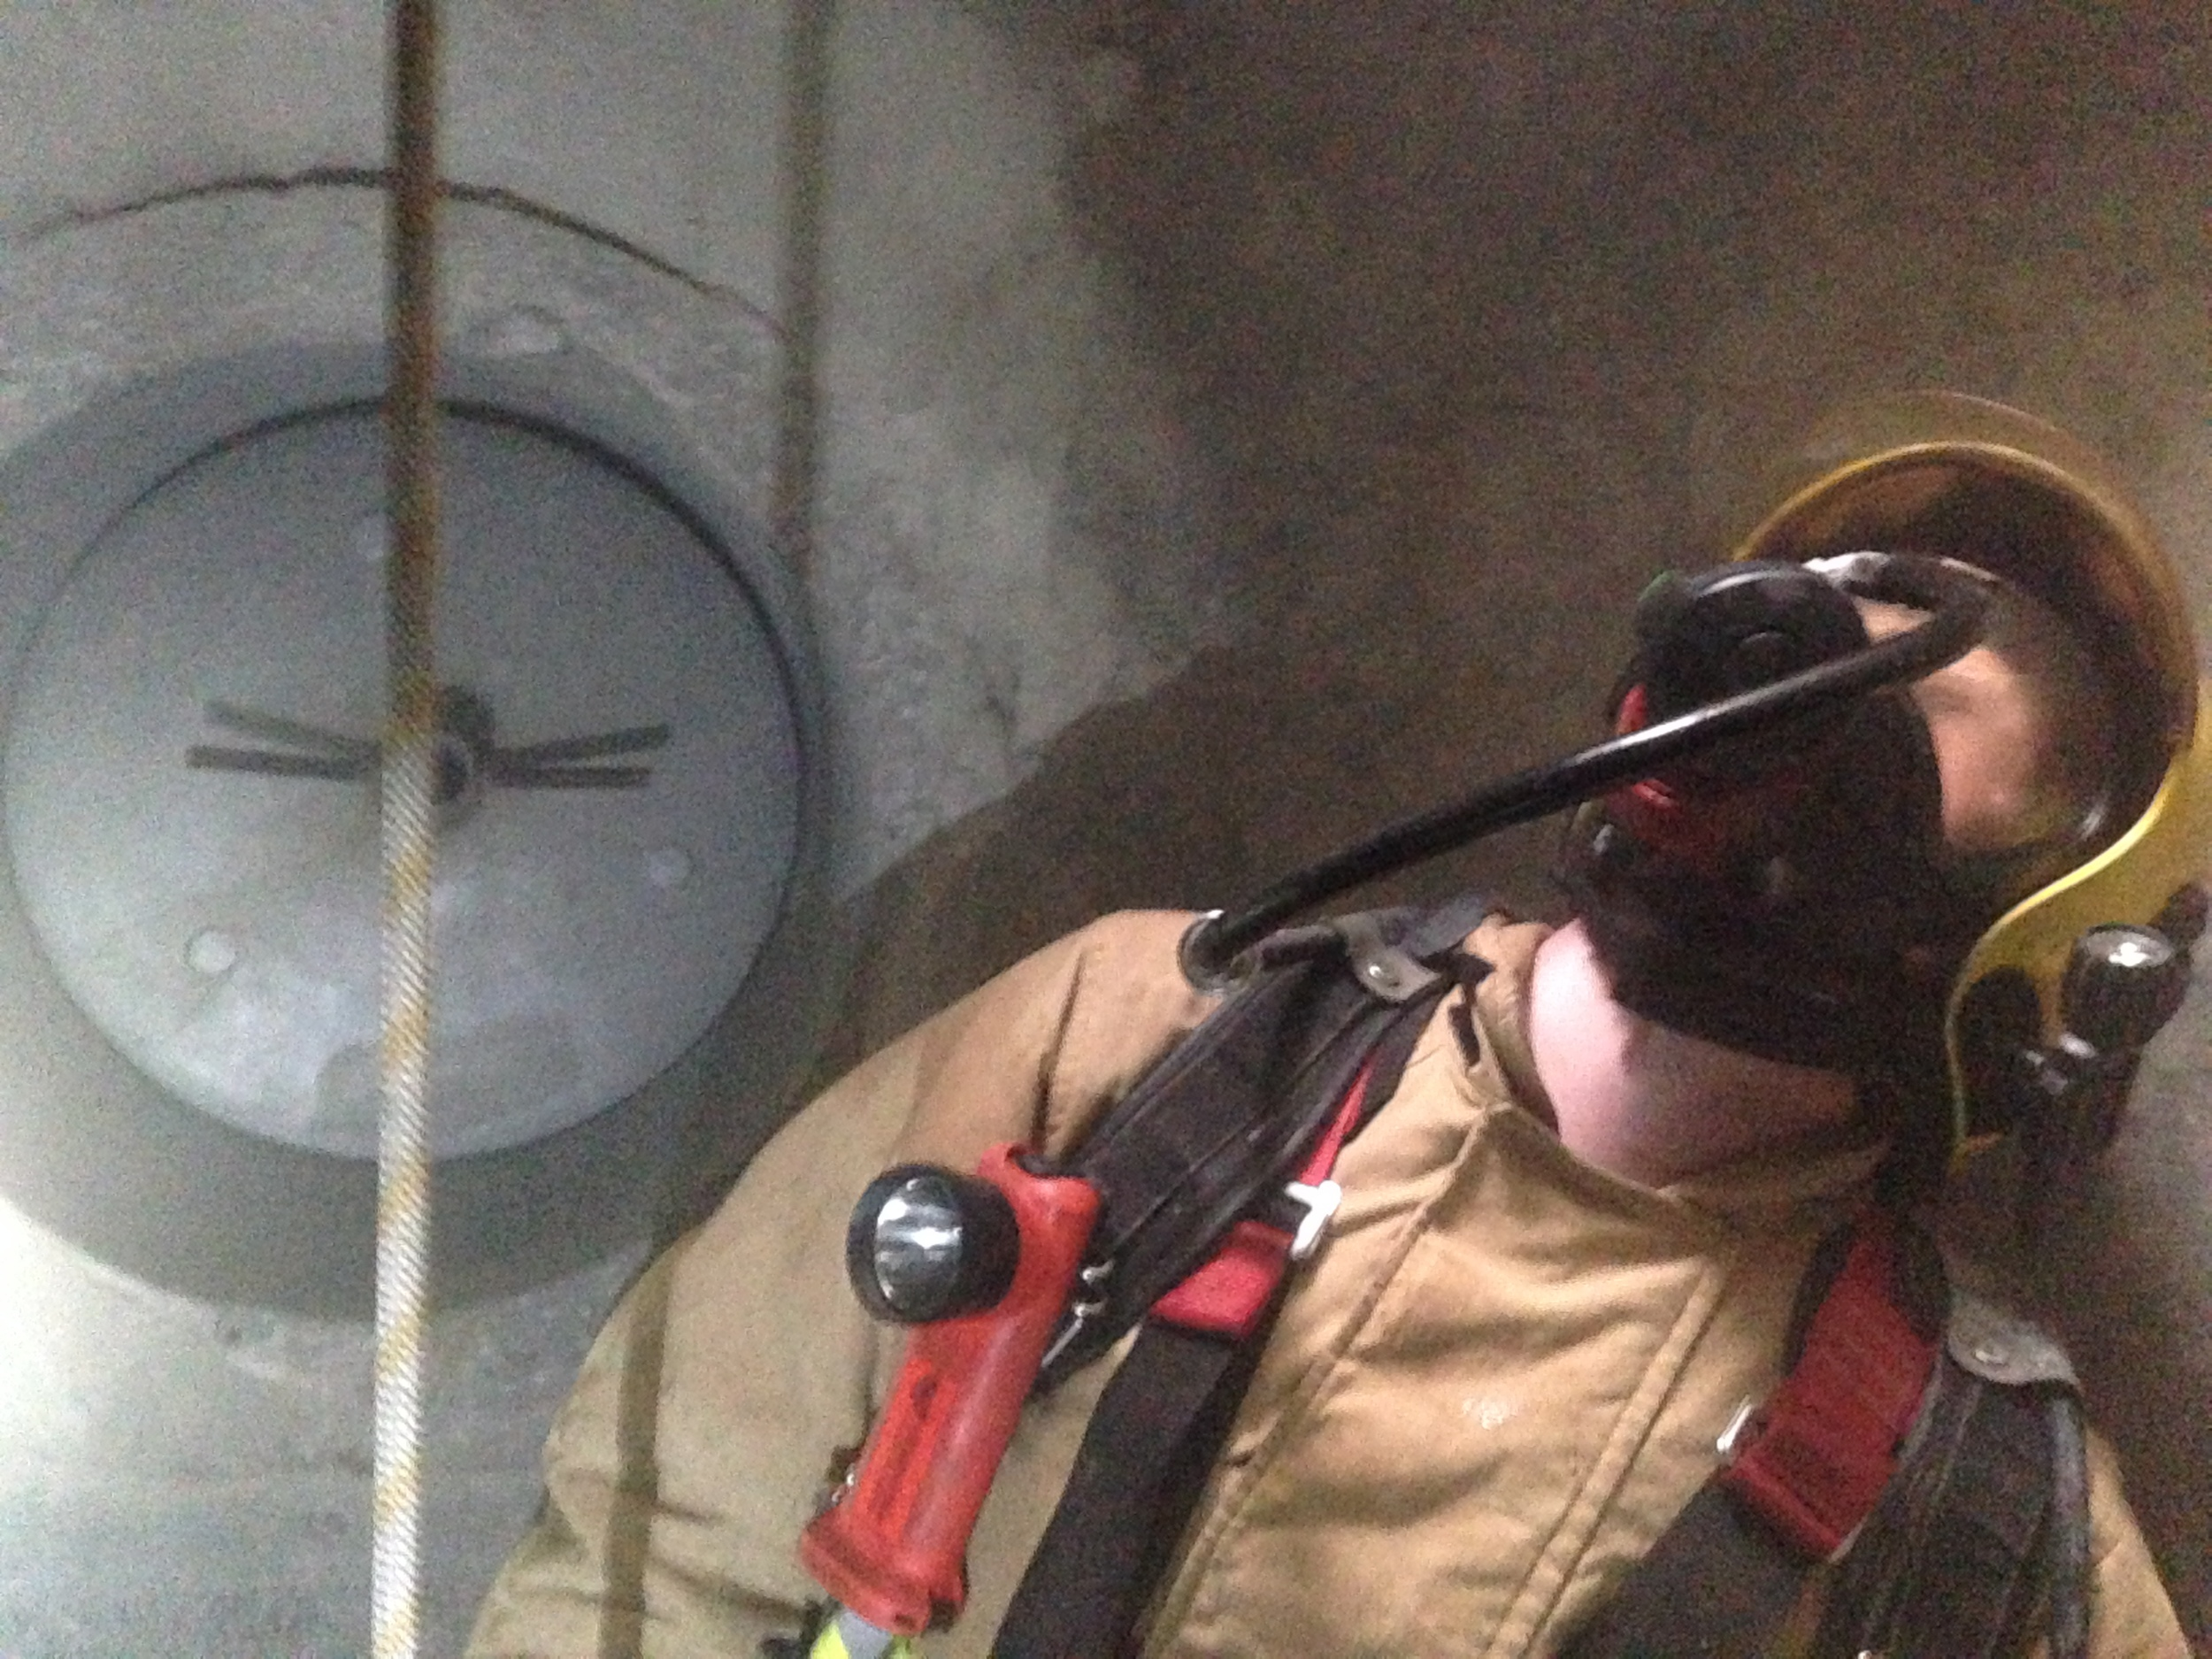 Fire fighter waiting at the bottom of entryshaft.